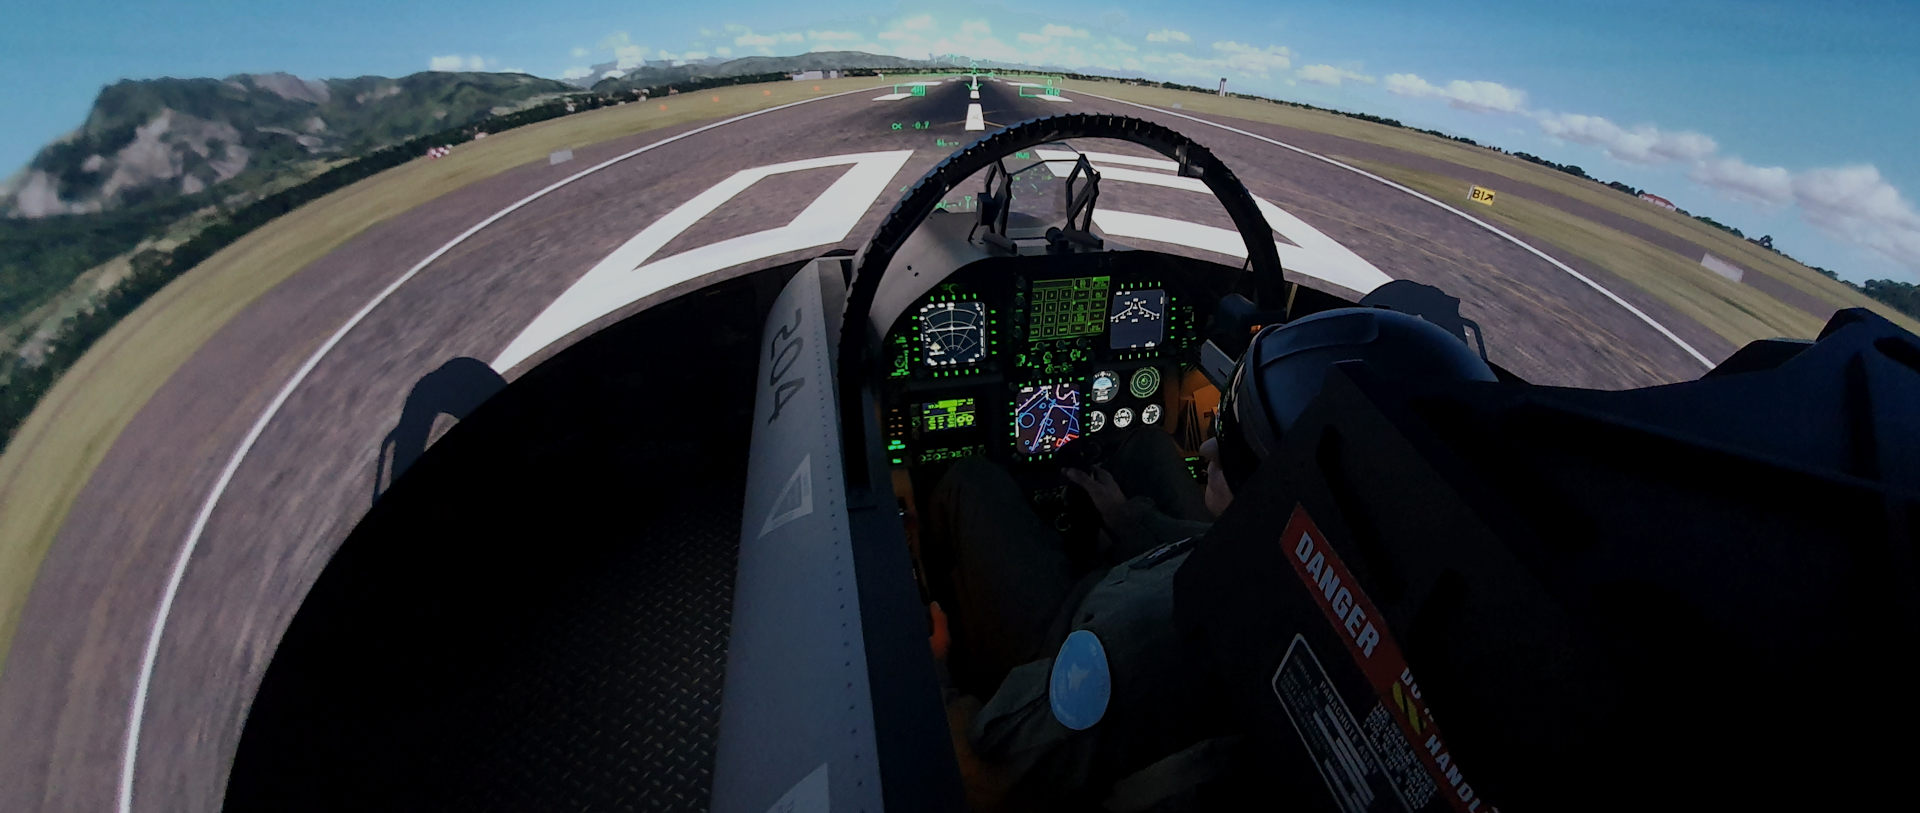 Turnkey F-18 Fighter Jet Simulator in 8 weeks